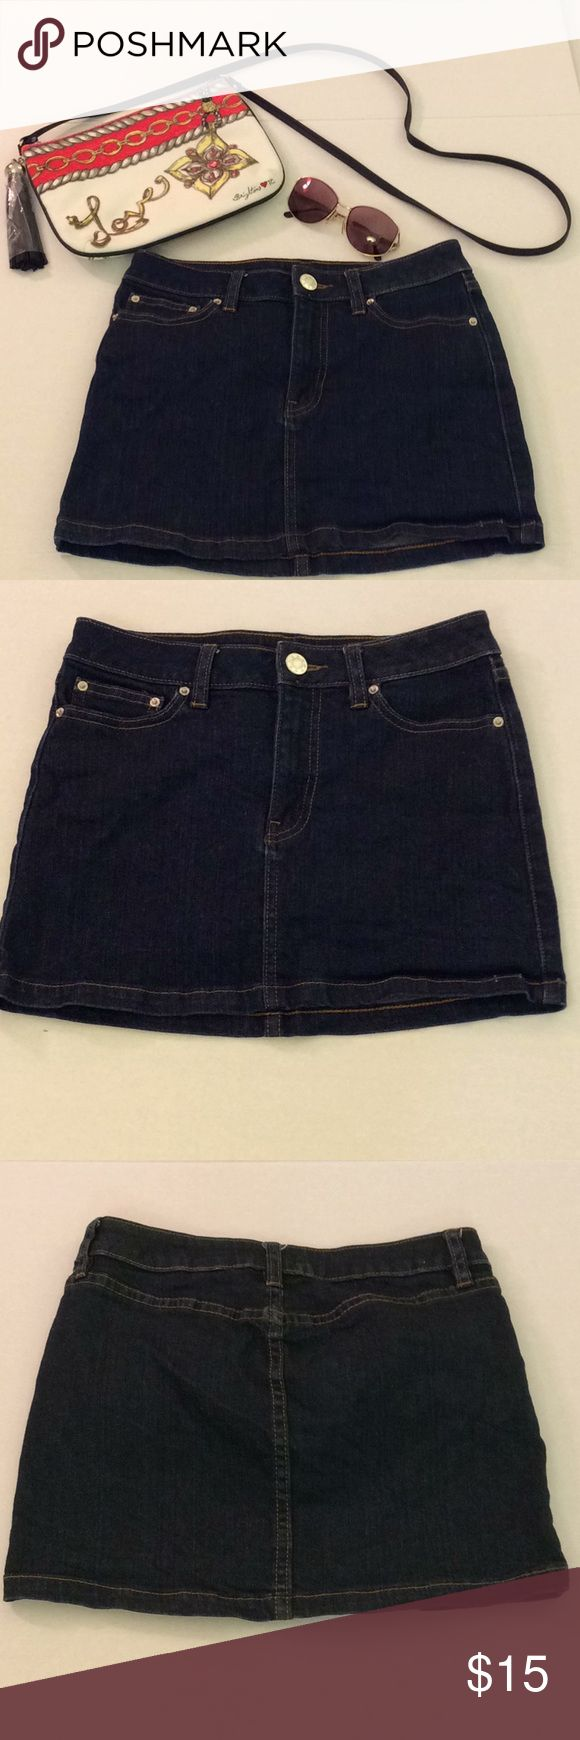 BDG Blue Mini Skirt Size 2 BDG MIni Skirt  Stated Size - 25  Dark Blue  98% Cotton, 2% Spandex  Front zipper and button   Approximate flat lay measurements in Inches:   Waist - 26  Front length - 12  Back length - 13  Pre-owned  Very good used condition  No signs of major wear - no holes, rips, or stains  Light fade around zipper  Reasonable offers welcomed!   Accessories on cover photo not included in this sale. They will be available soon.😊  No trades please.  Thank you for Poshing!👋😊🌺…